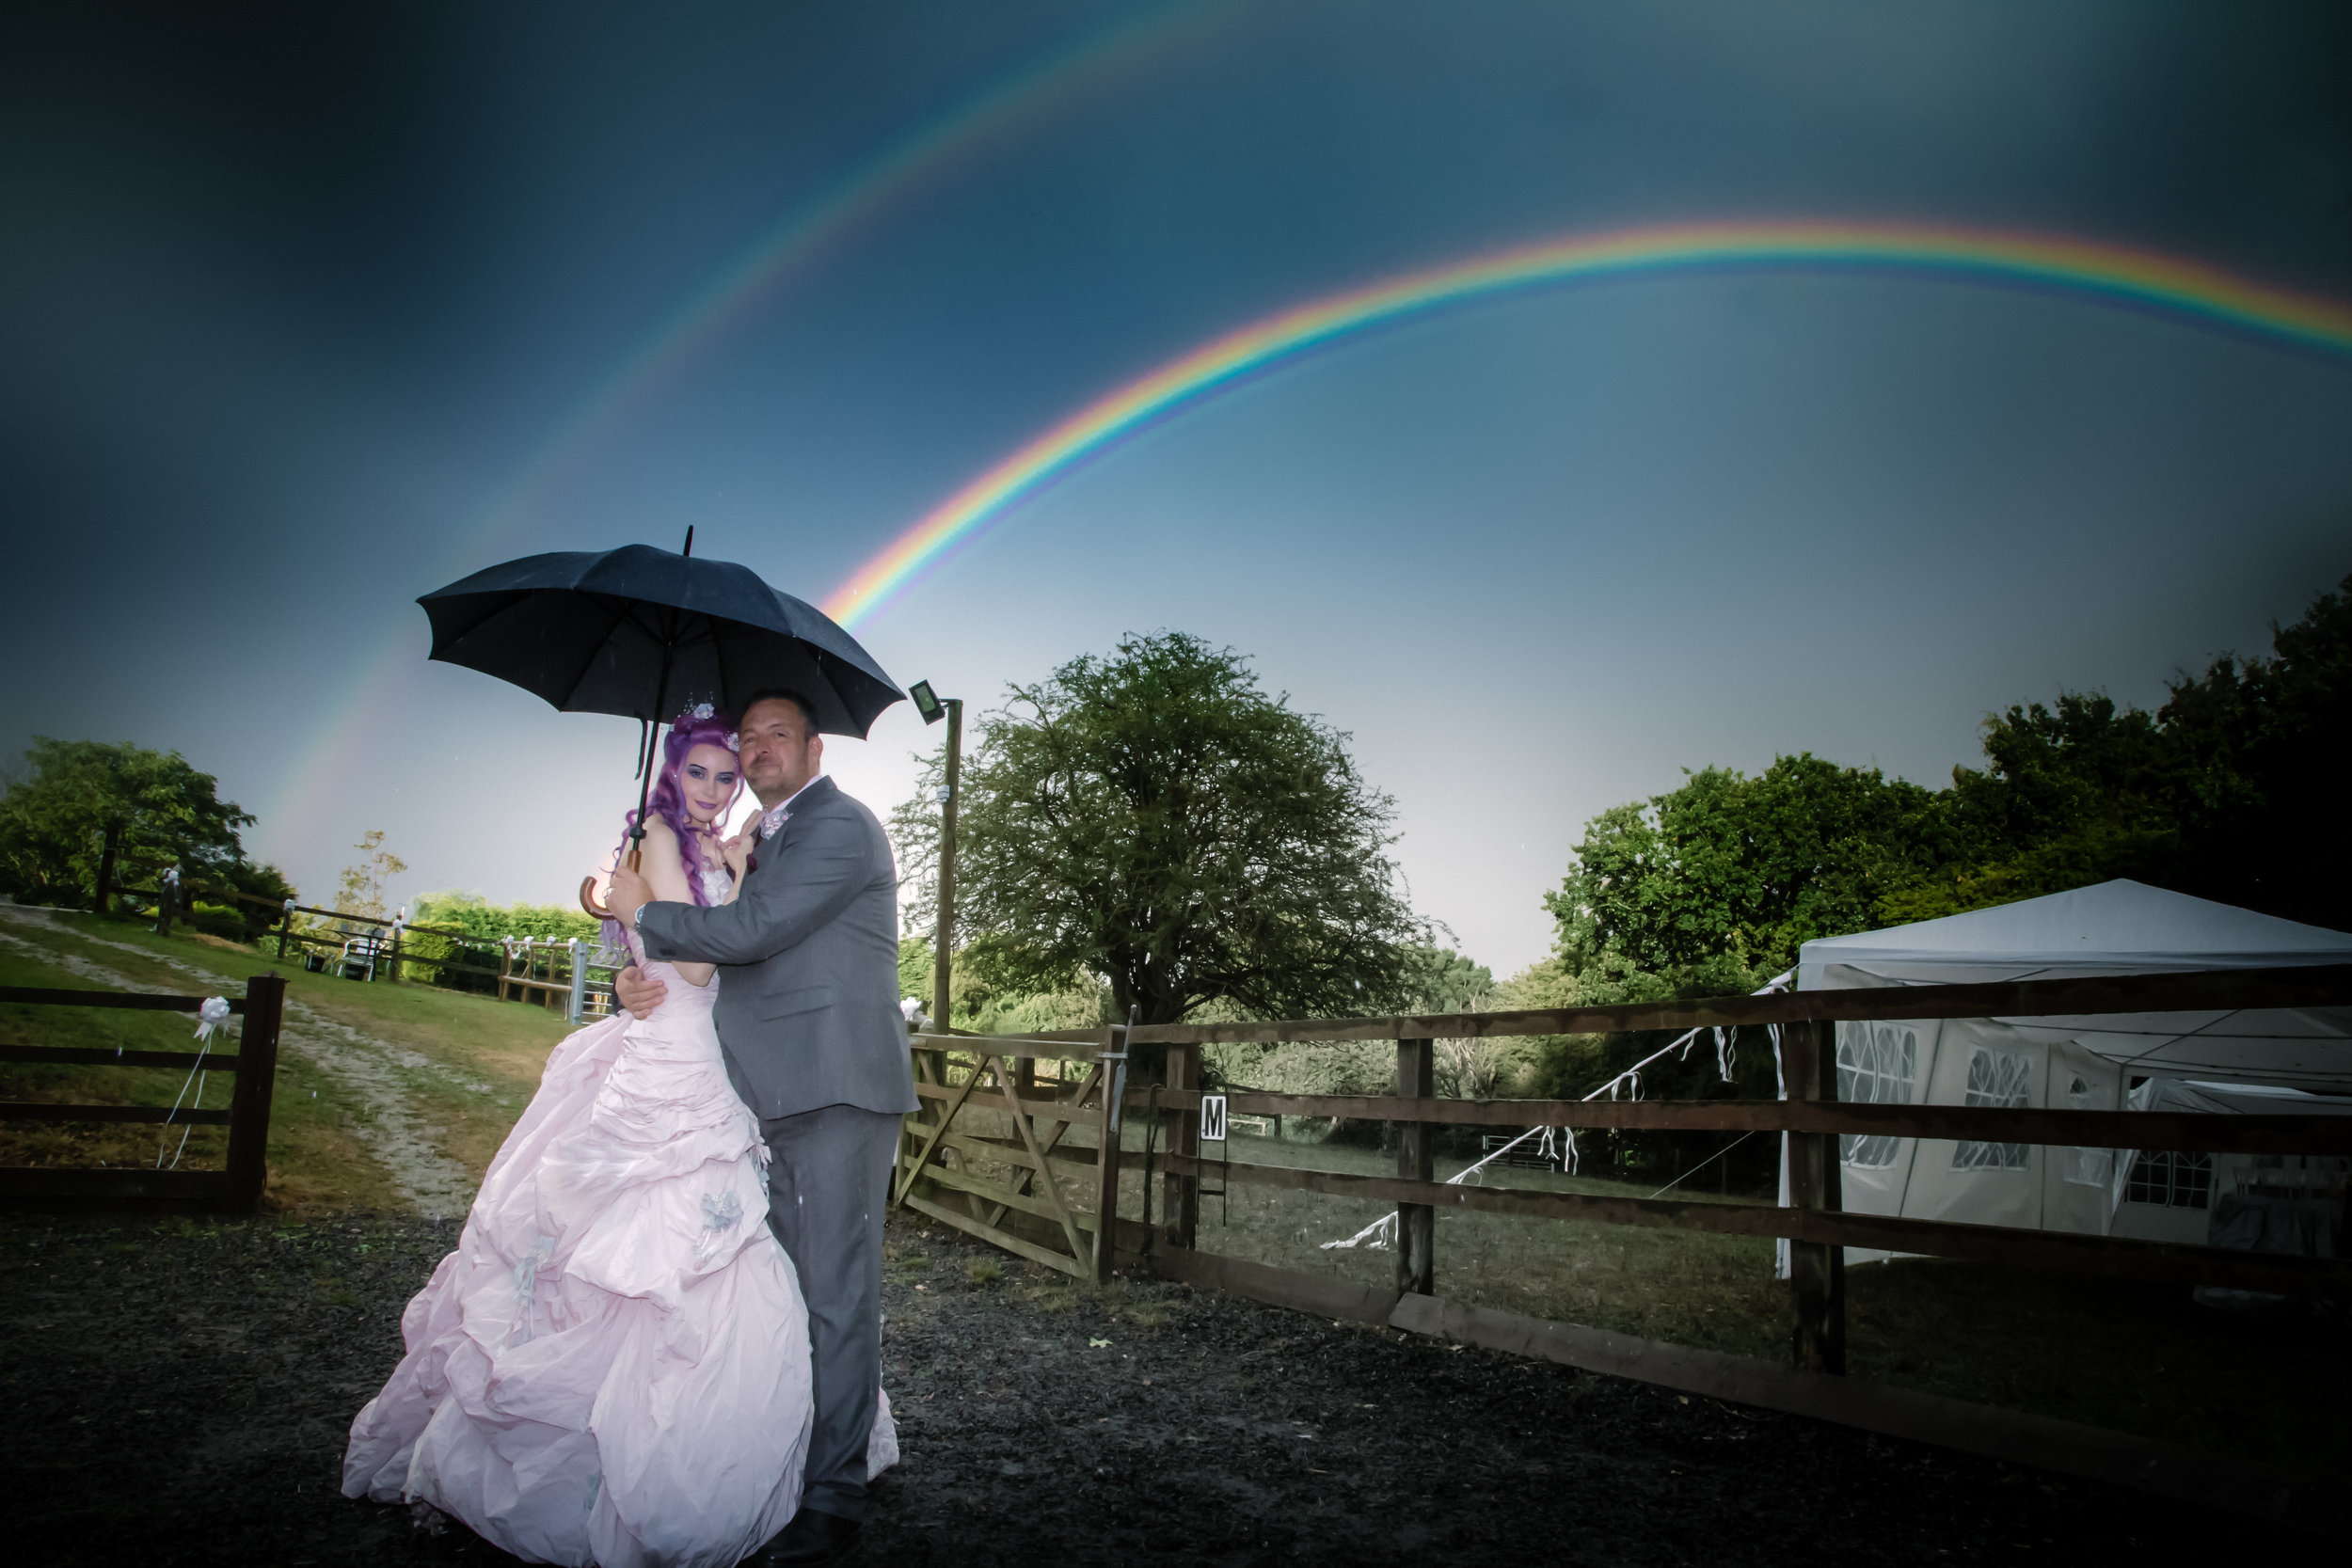 Hollwyood-characters-bride-essex-movie-theme-wedding-double-rainbow-30